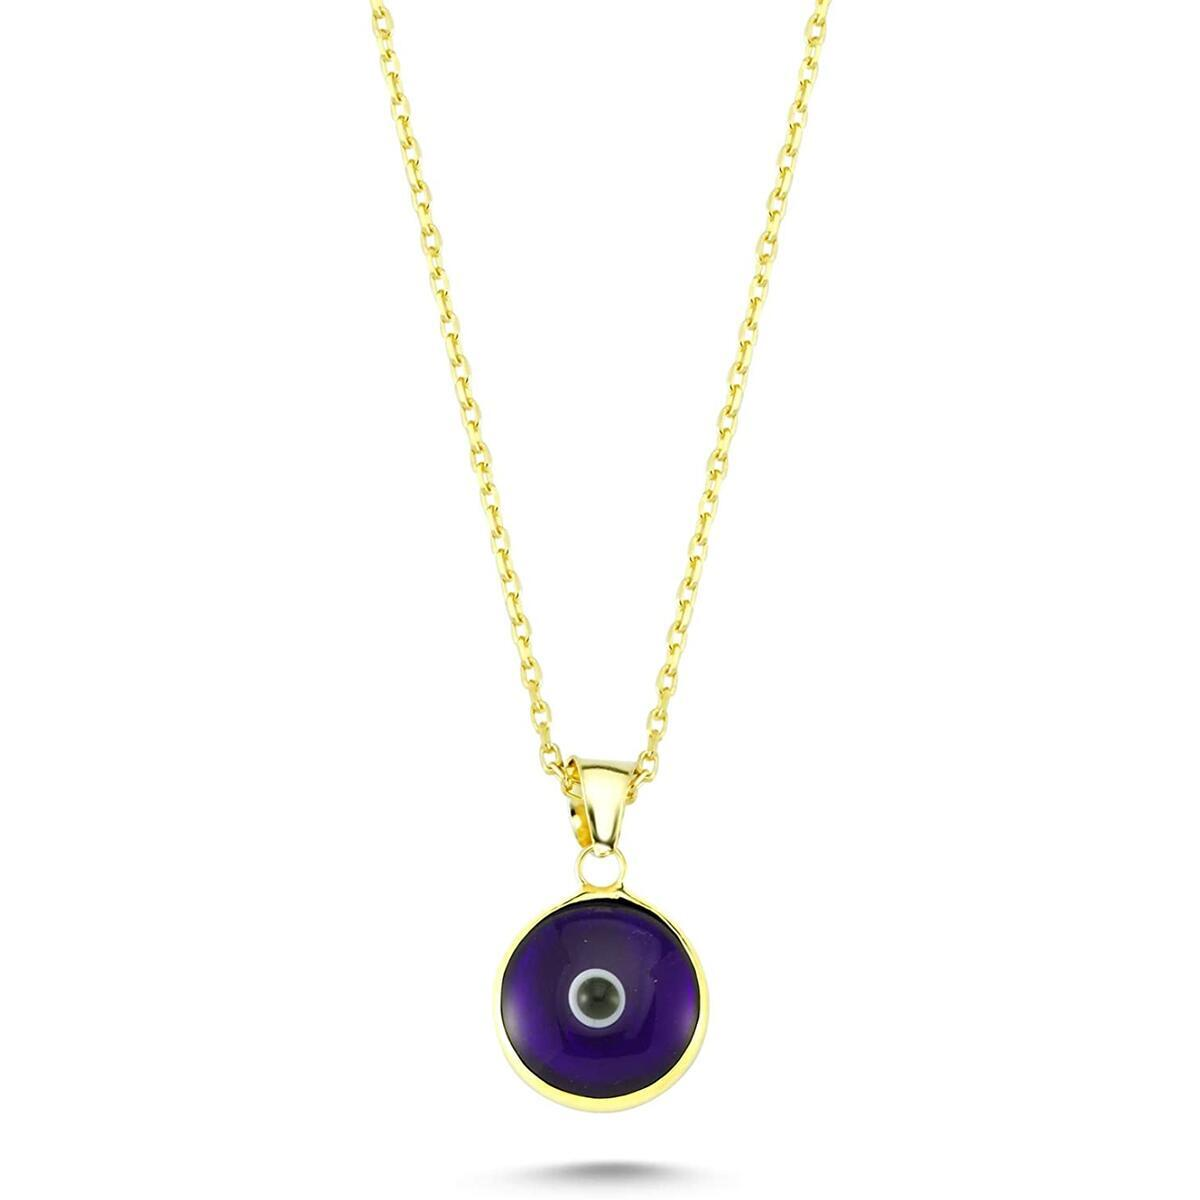 14K Gold Plated 925 Sterling Silver Evil Eye Protection Charm Pendant Necklace Chain for Women